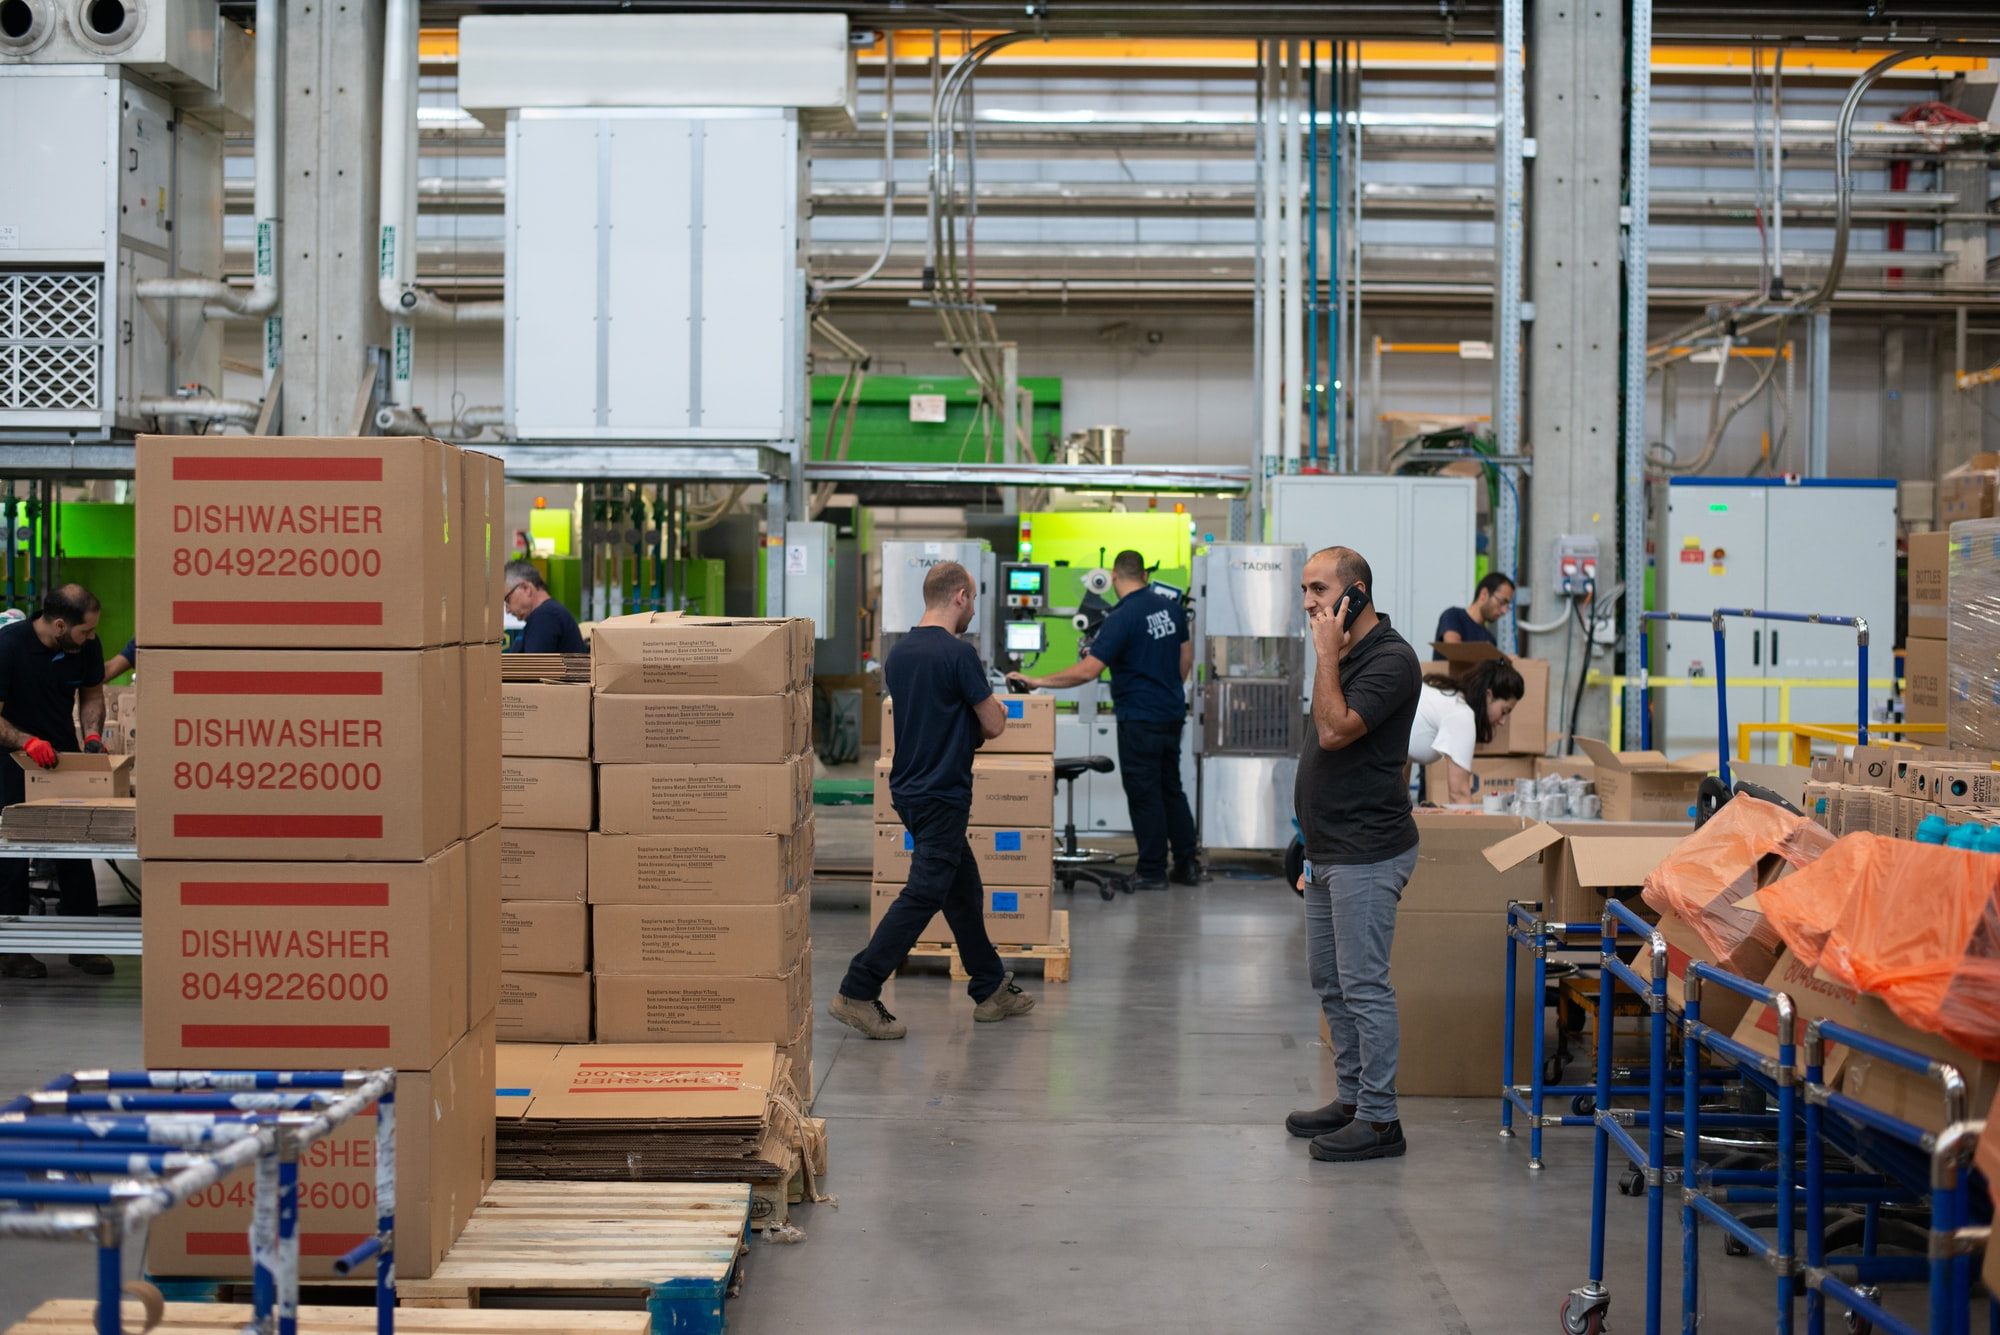 People working at the SodaStream factory in Israel.